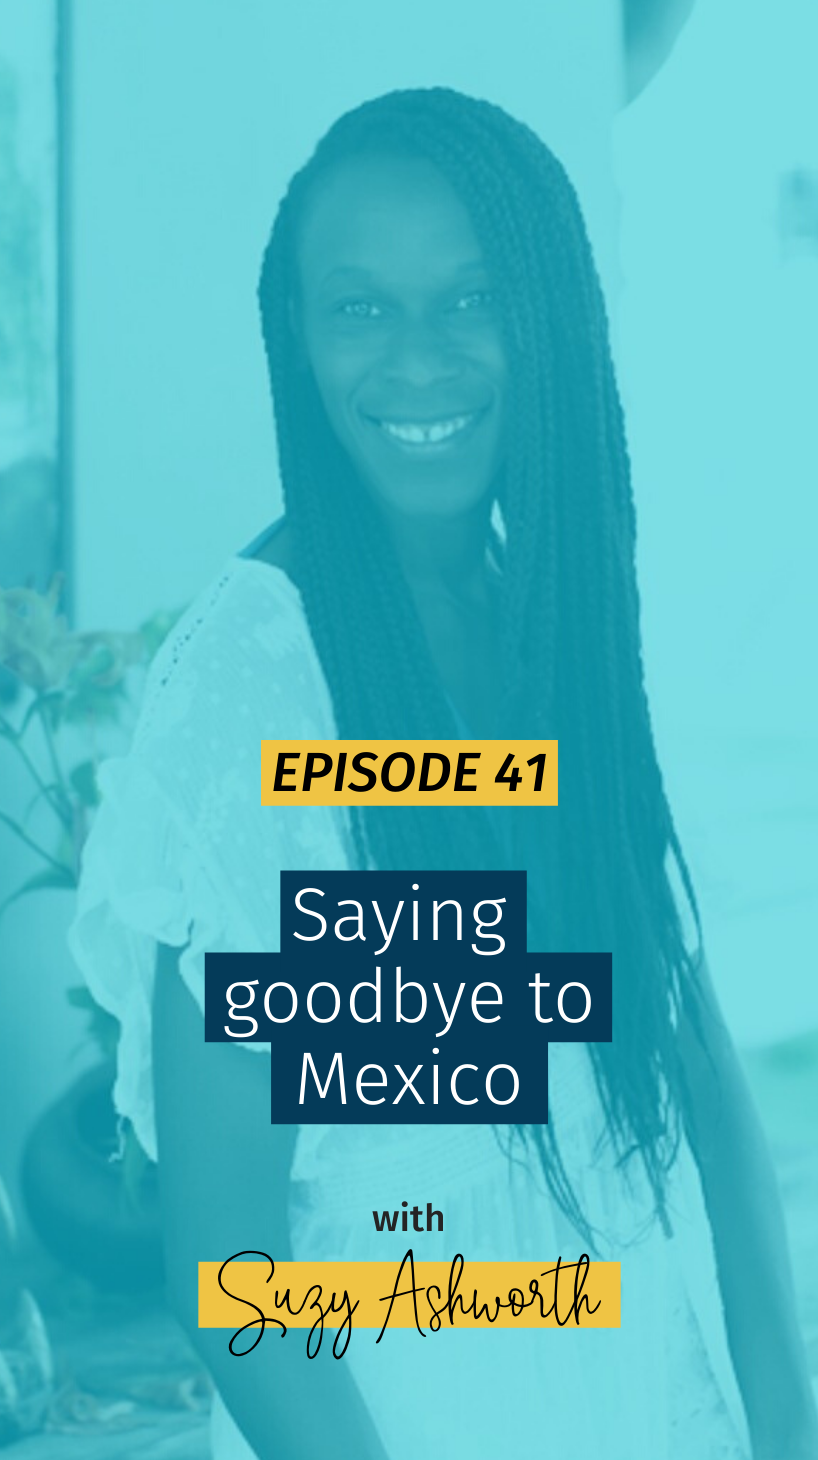 041 Saying goodbye to Mexico